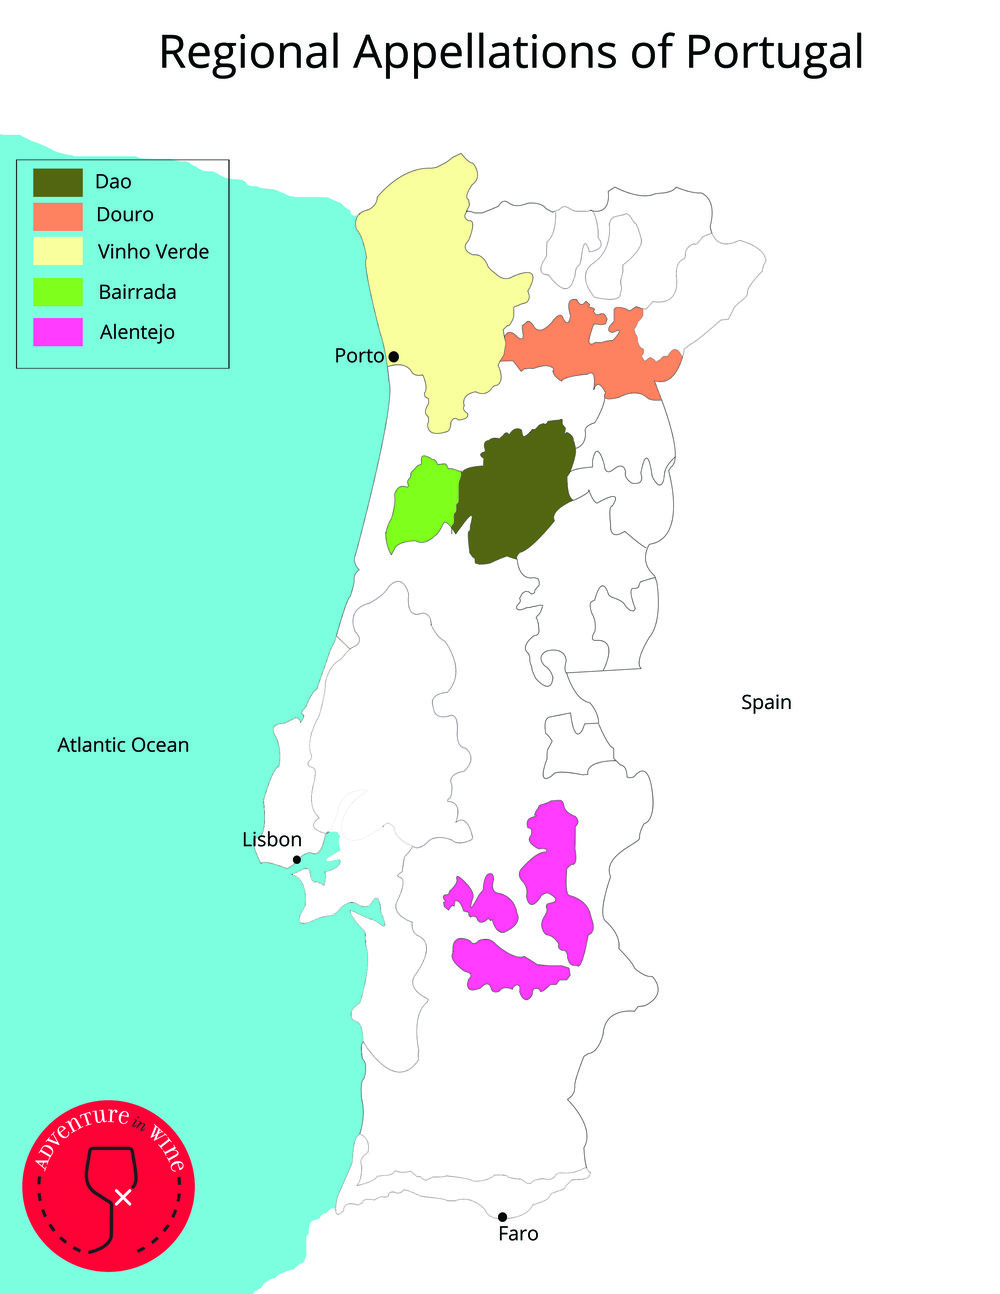 Portugal's Appellations